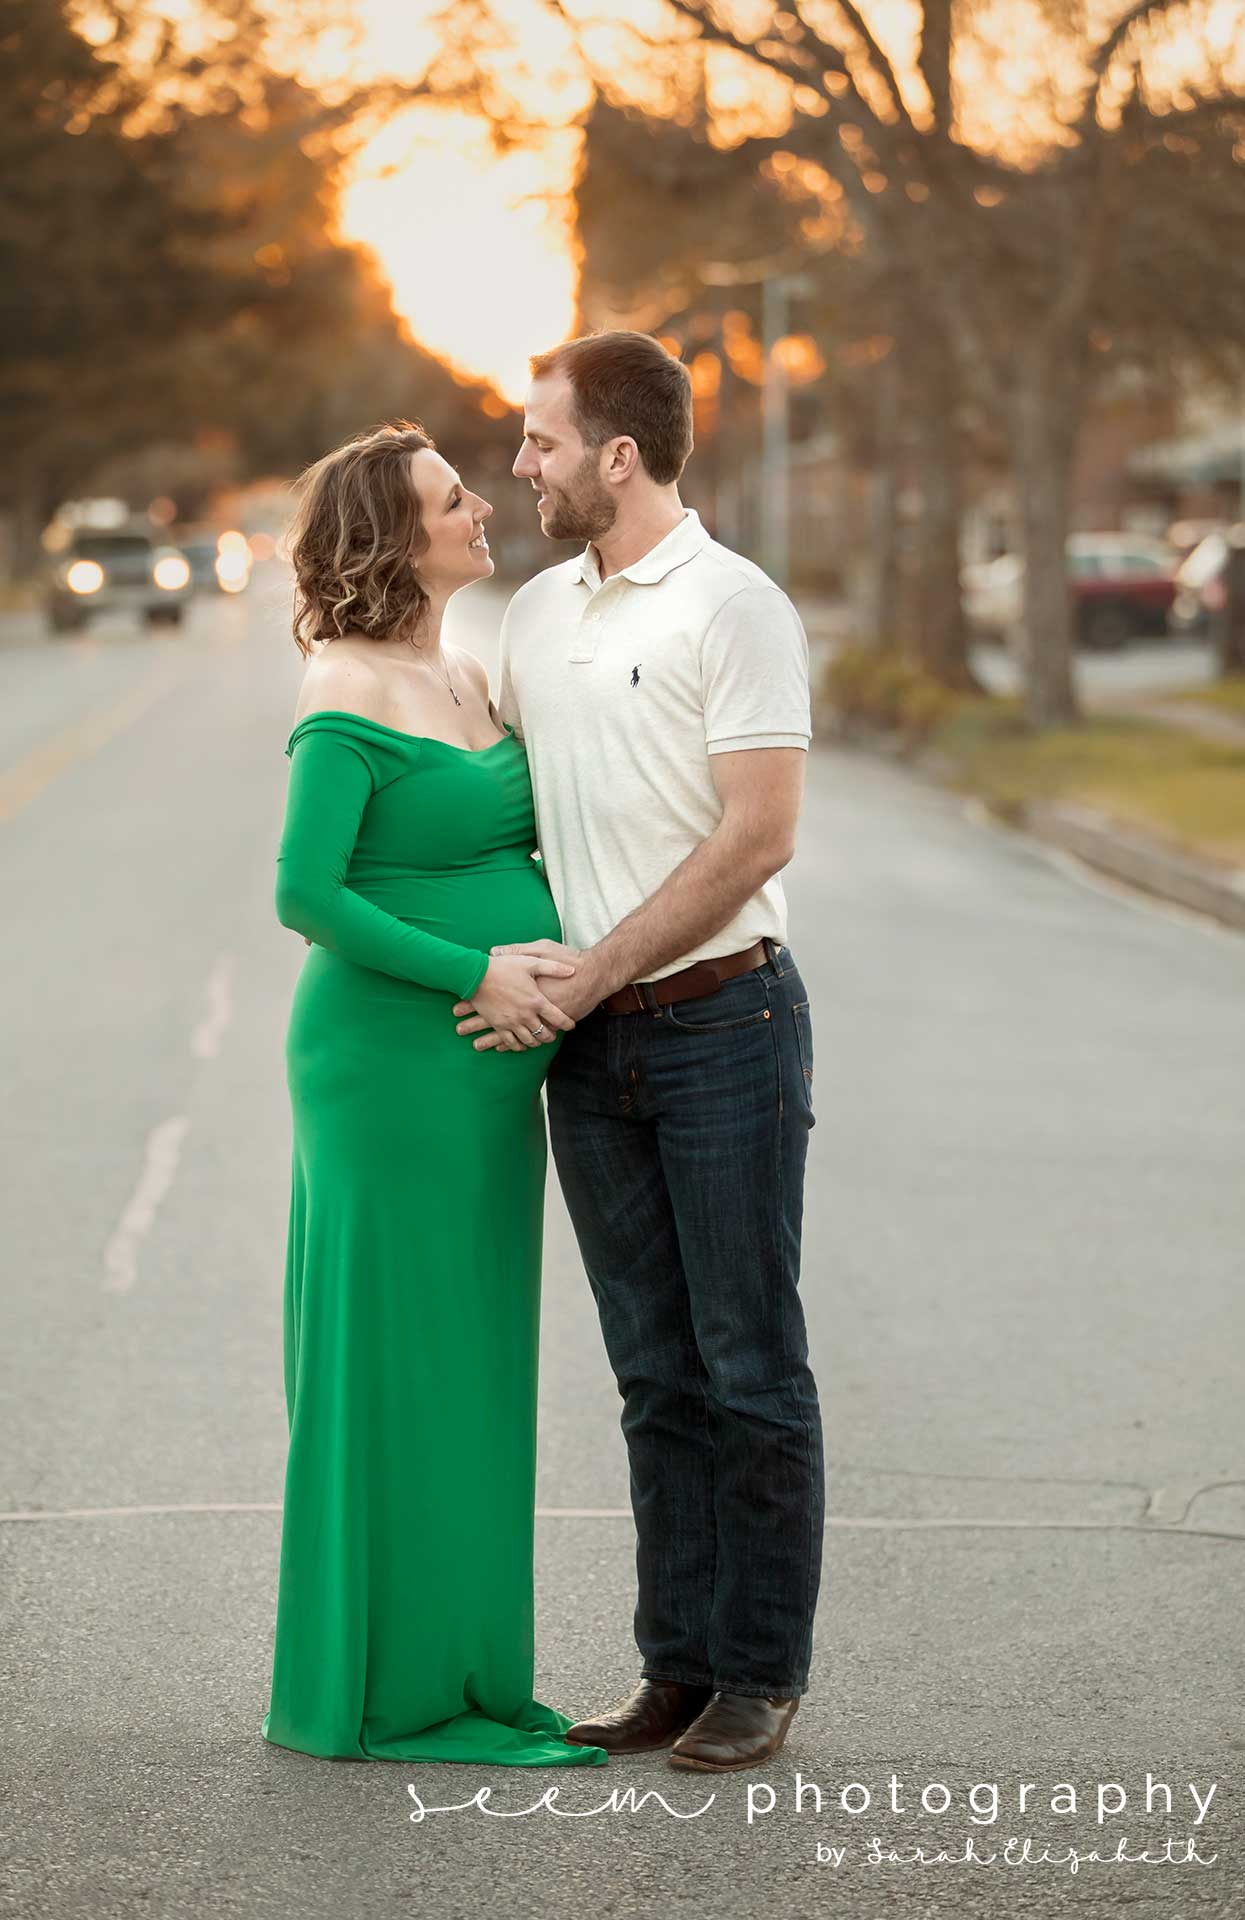 Houston Maternity Photographers SEEM photography Couple Embraces in Street